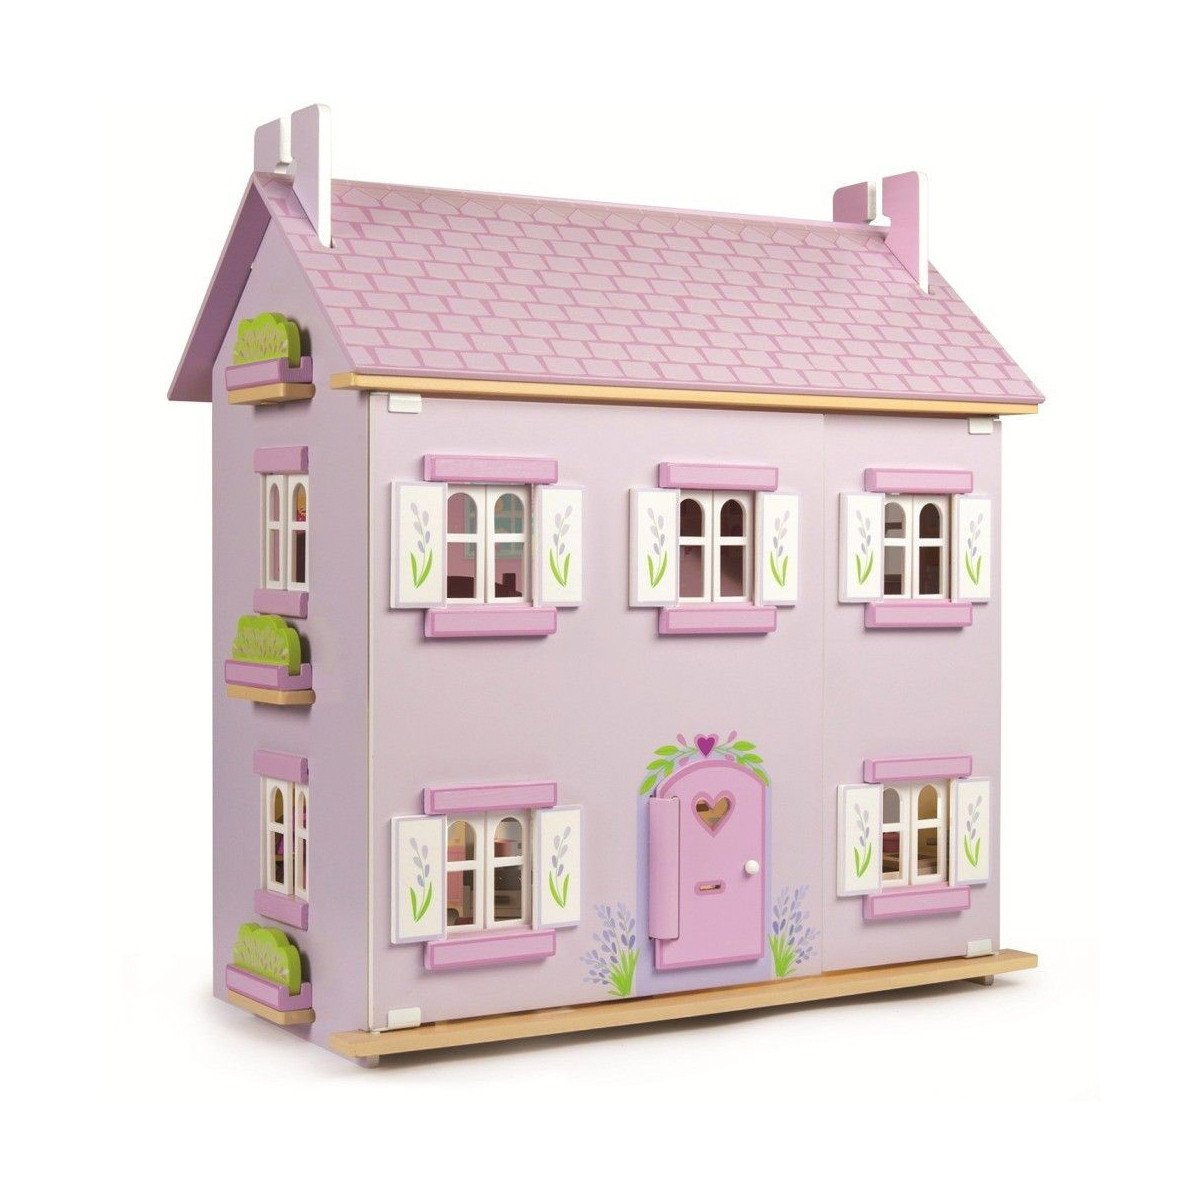 Le Toy Van Daisy Lane Lavender House   - Le Toy Van - Little Earth Nest - 1